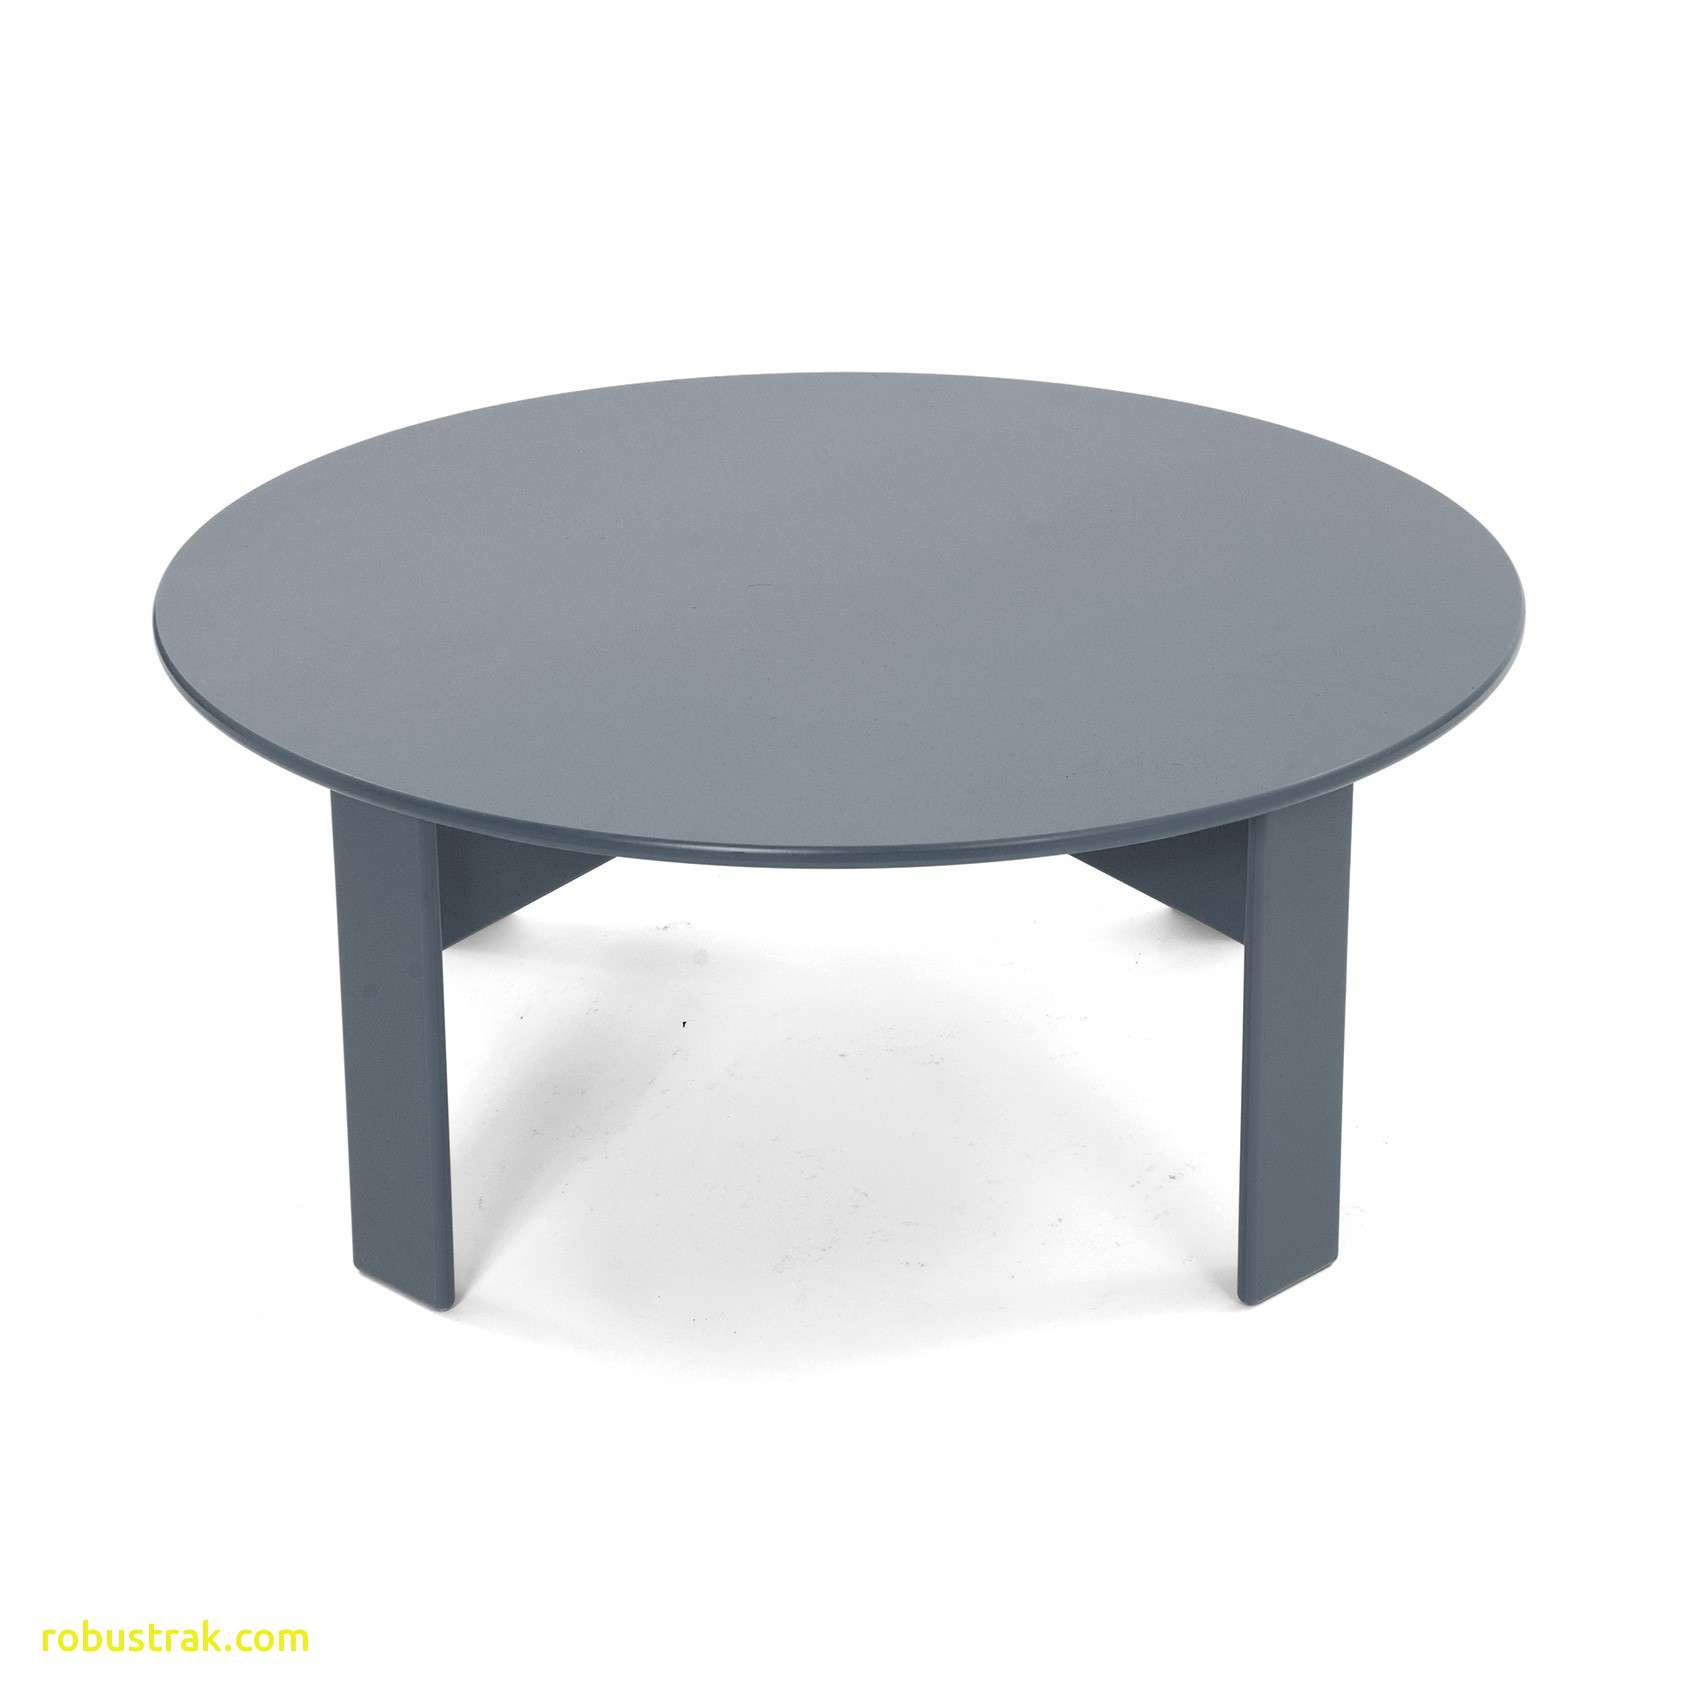 large rectangular vase of 8 round lift top coffee table pics coffee tables ideas within round lift top coffee table collection round lift top coffee table awesome square glass top